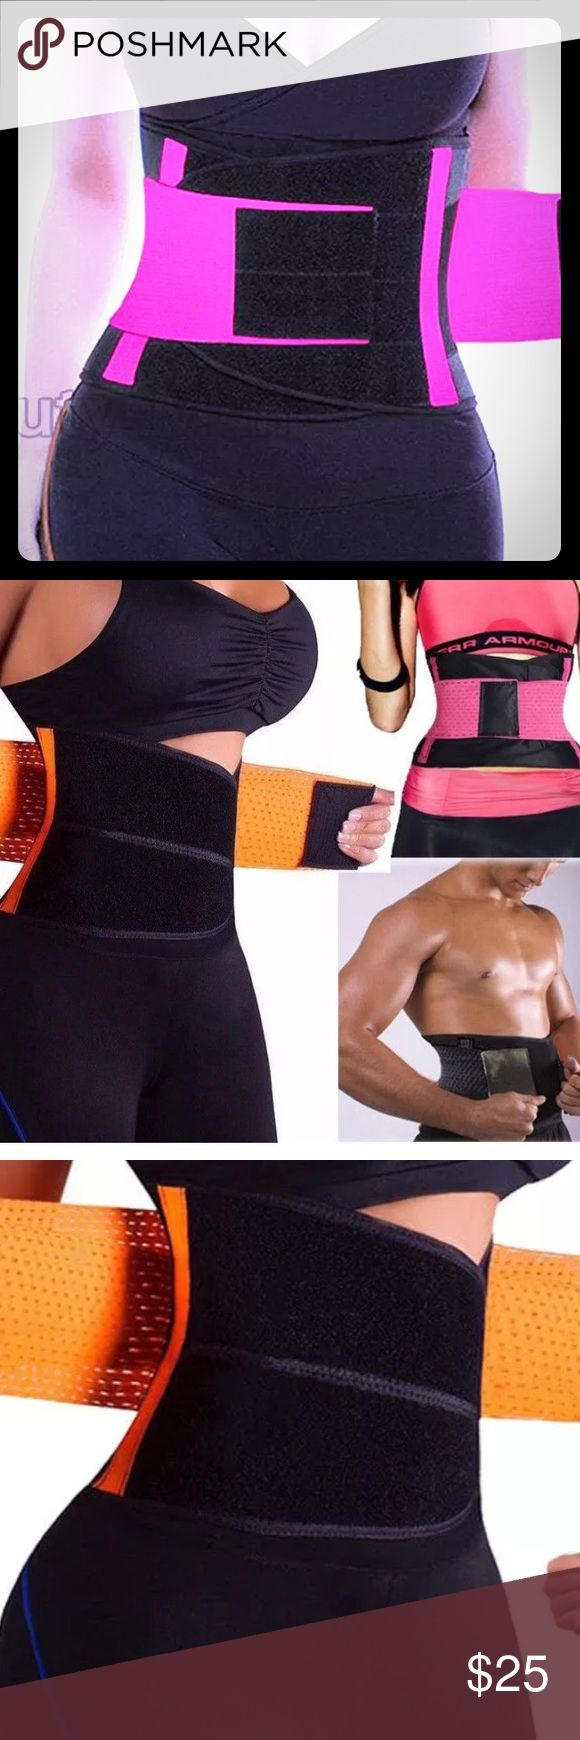 Waist training belt Size S   Waist inch:23.6-27.5.     Cm:60-70.    Length Cm-82. Inch-32.3 Color pink.  Adjustable front and side fitting wraps Other